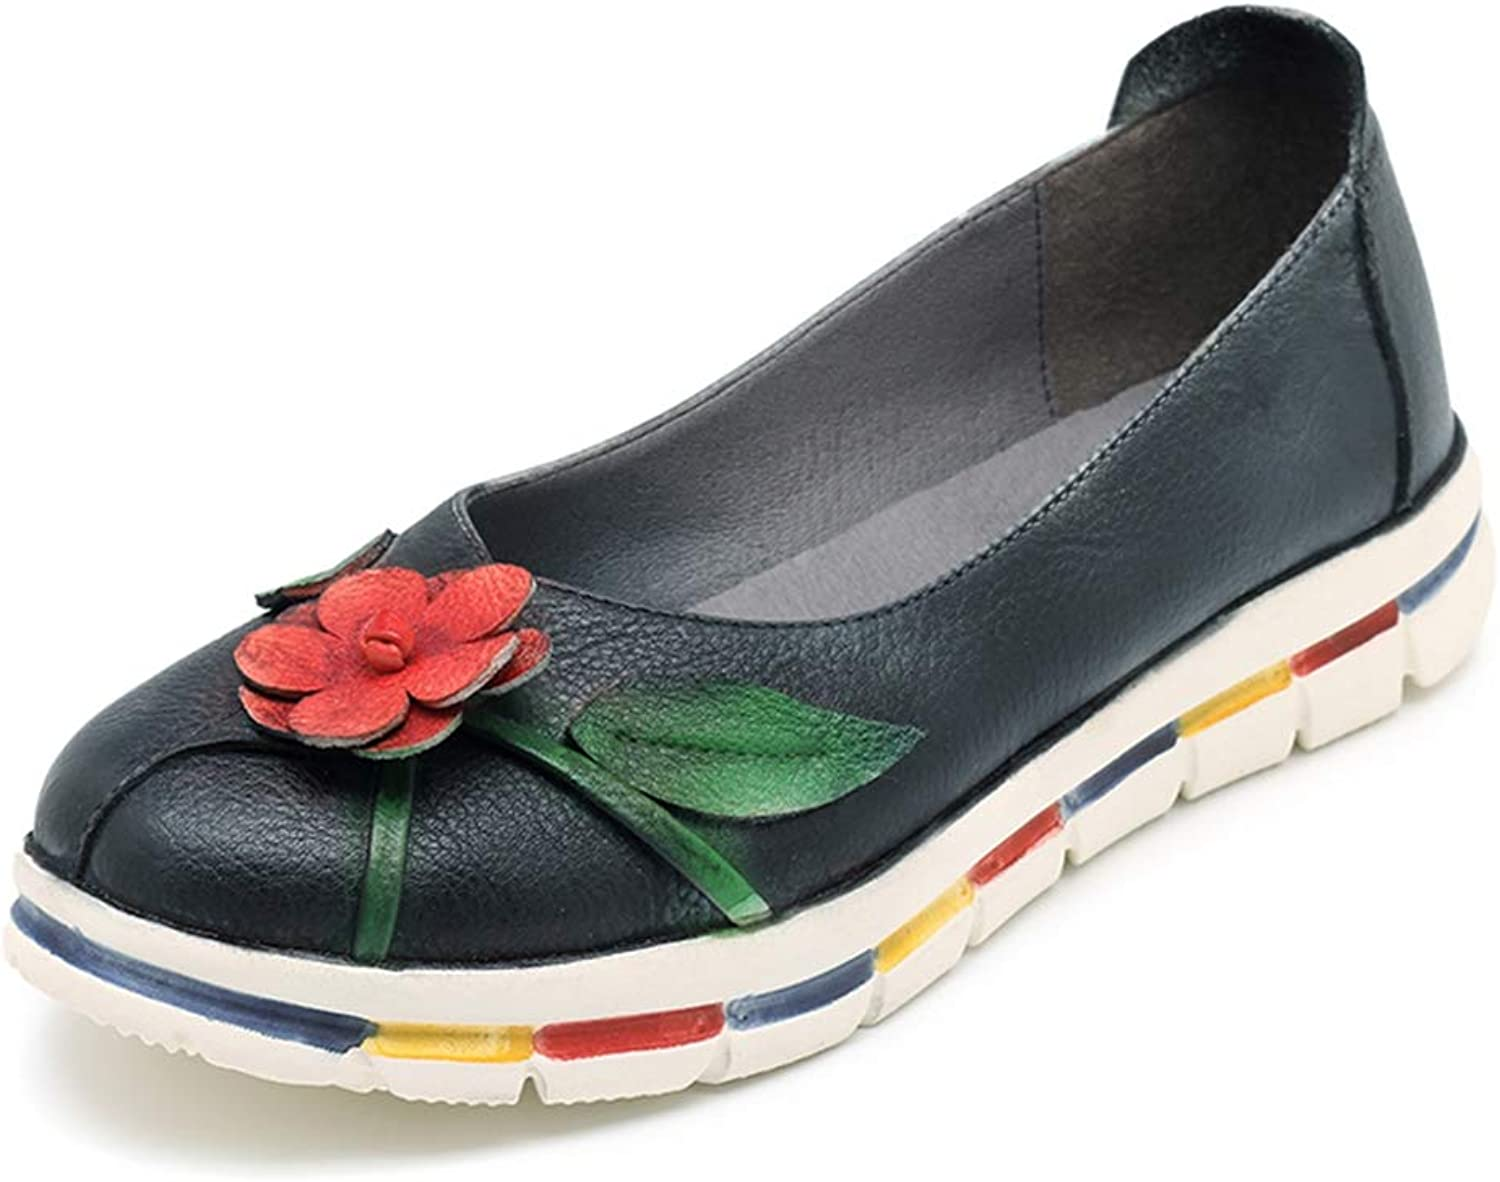 T-JULY Women Vintage Leather Flat shoes Loafers Retro Handmade Flower Slip On Casual Flats shoes